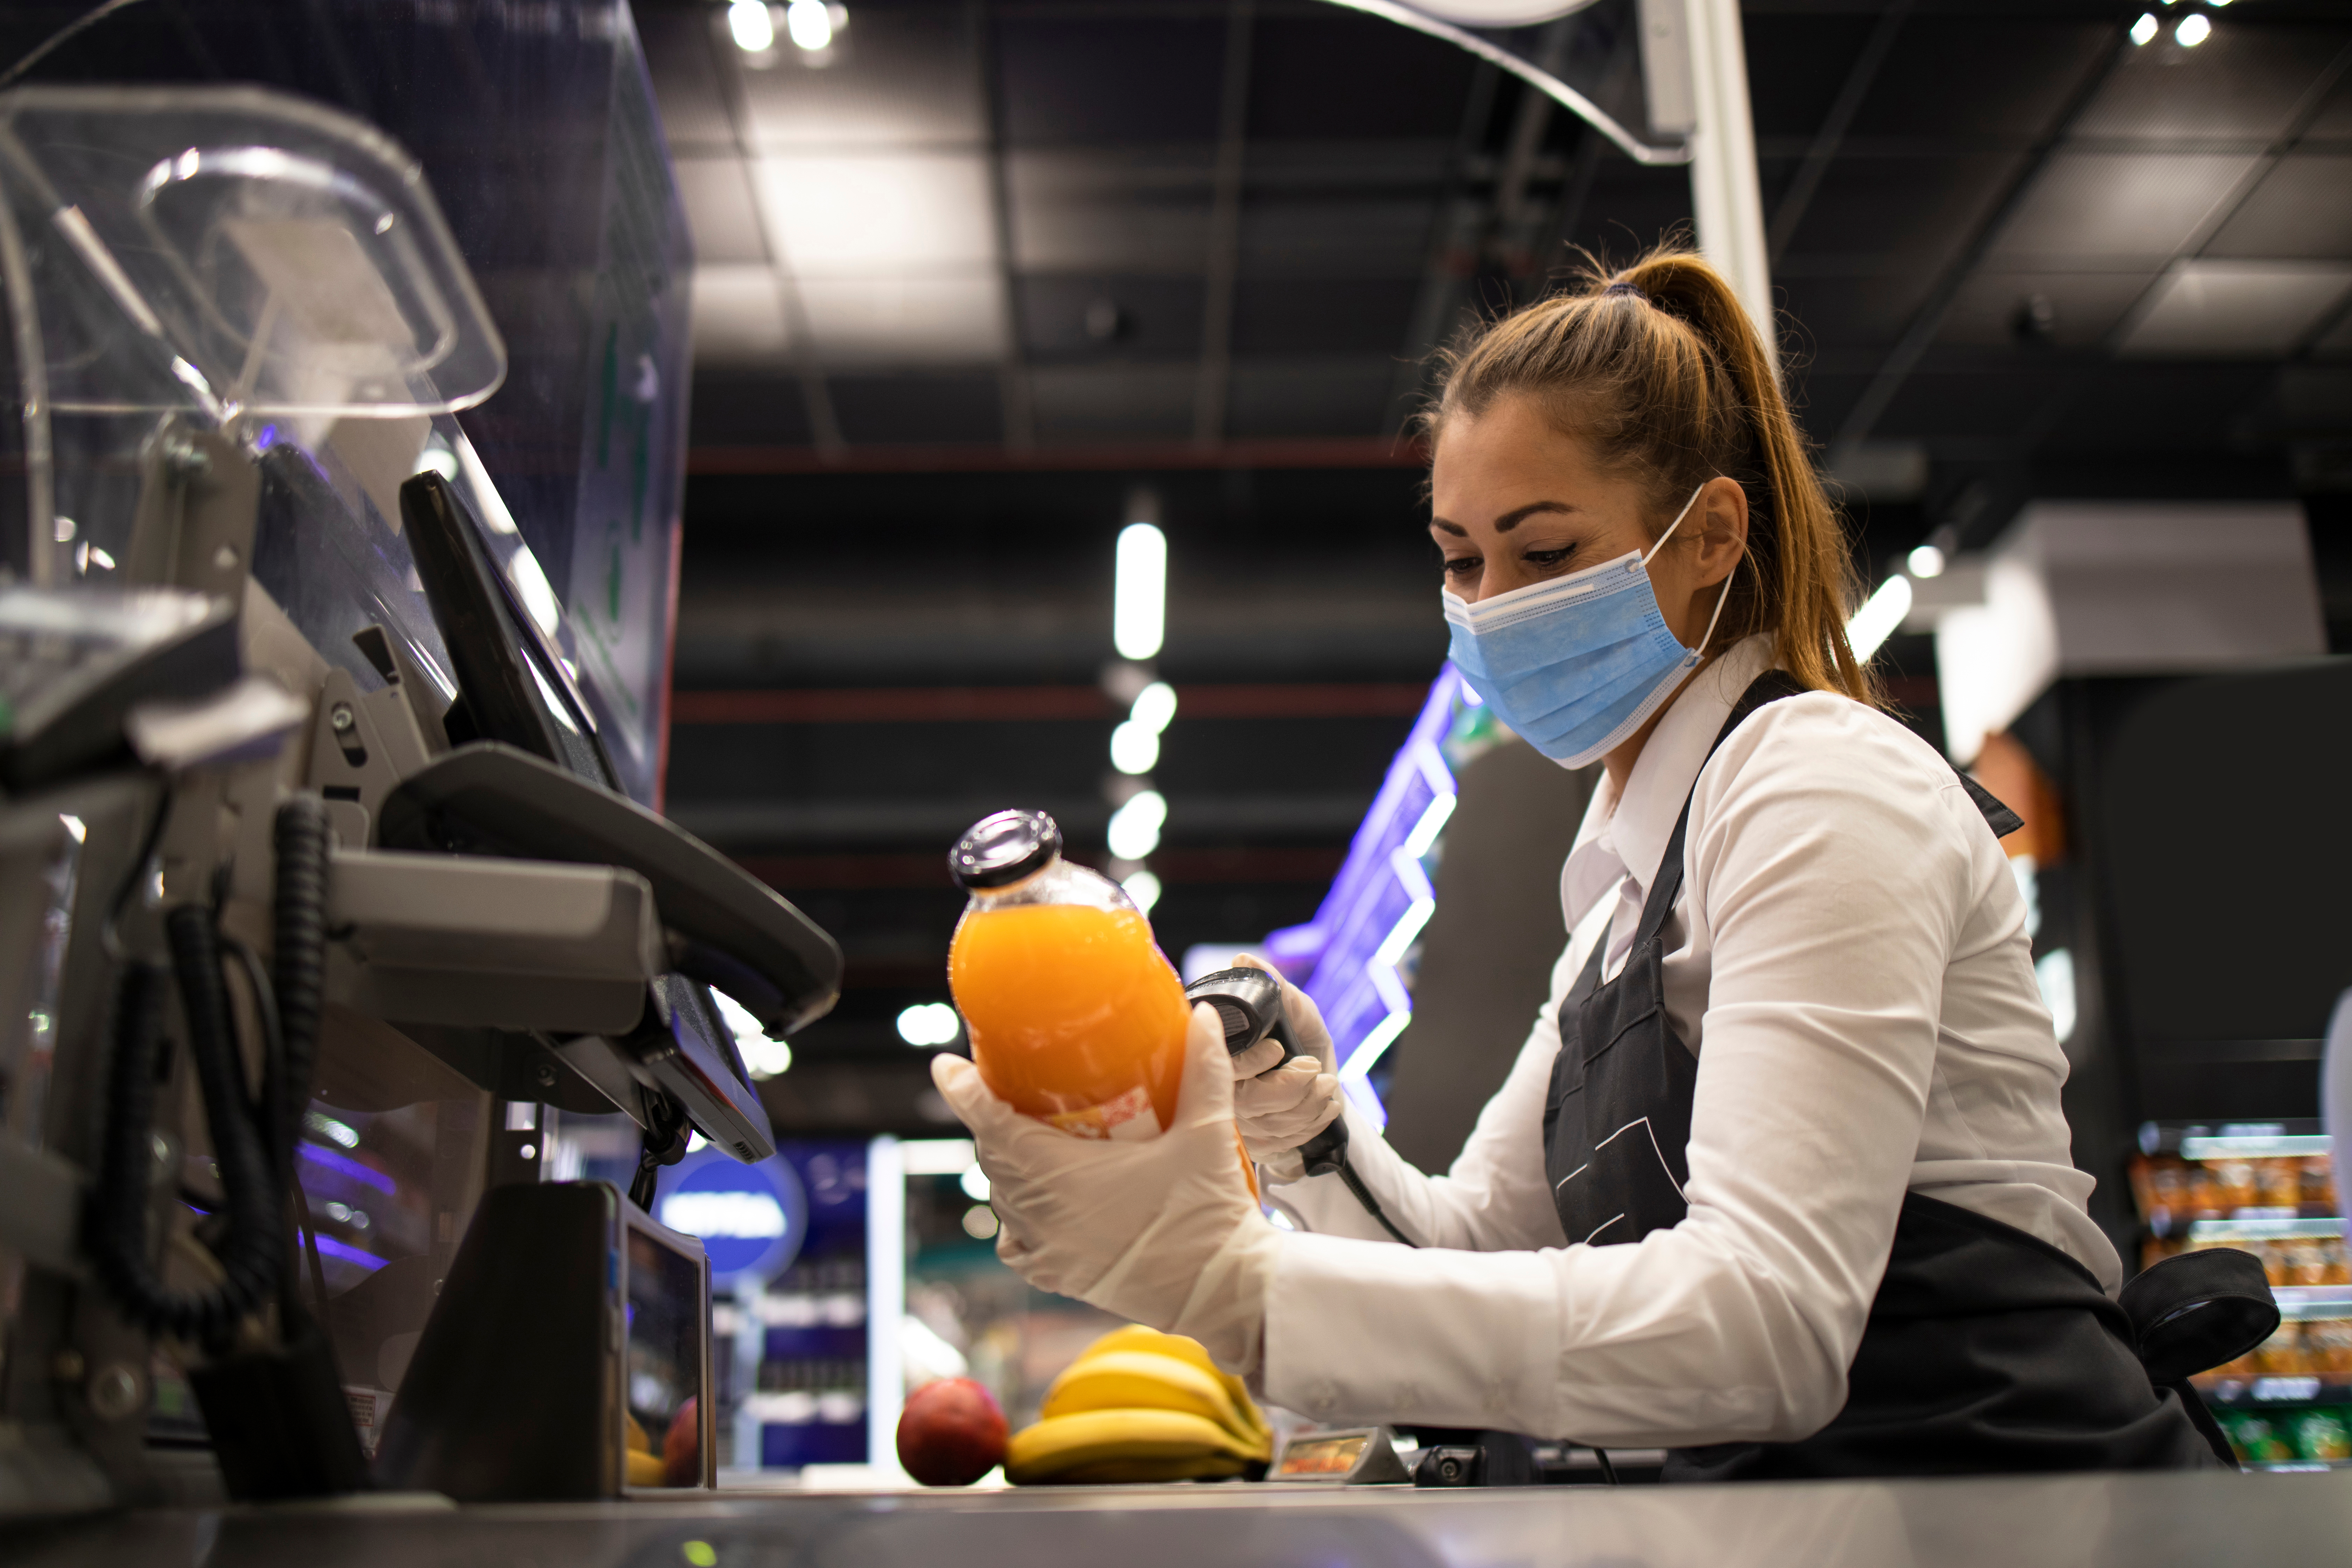 A female grocery store worker wearing a mask and gloves scans a bottled beverage at checkout.